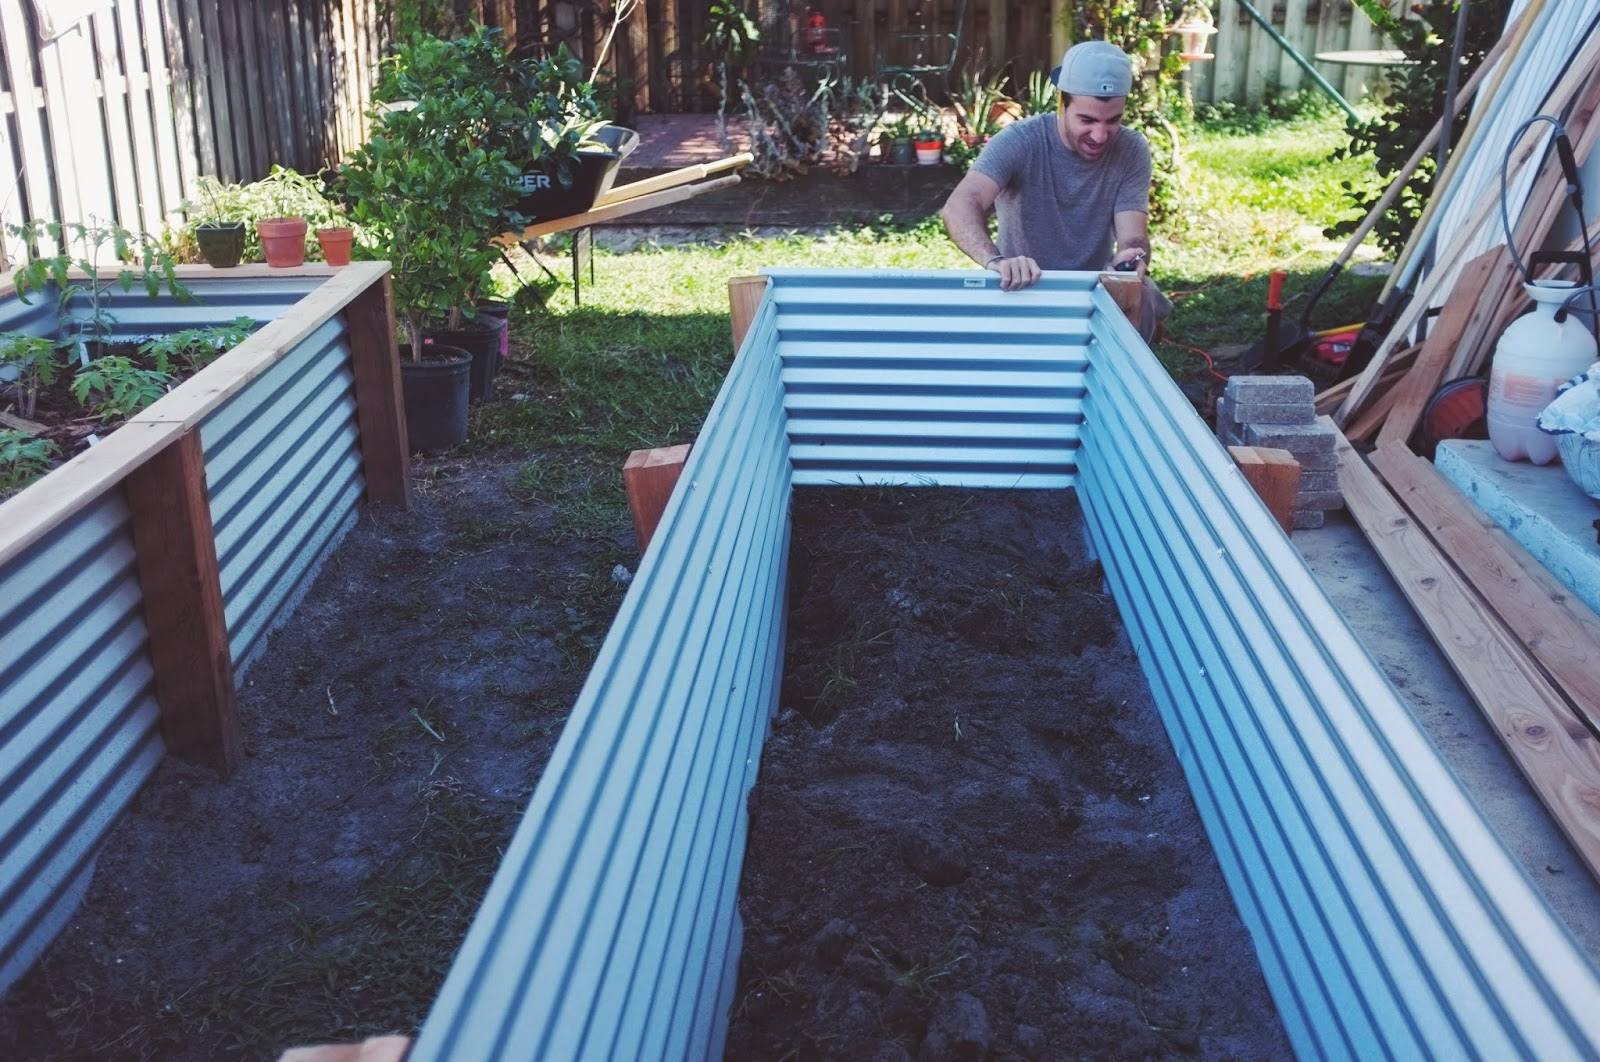 Retaining wall ideas corrugated steel and timber - 17 Best Images About Raised Garden Beds On Pinterest